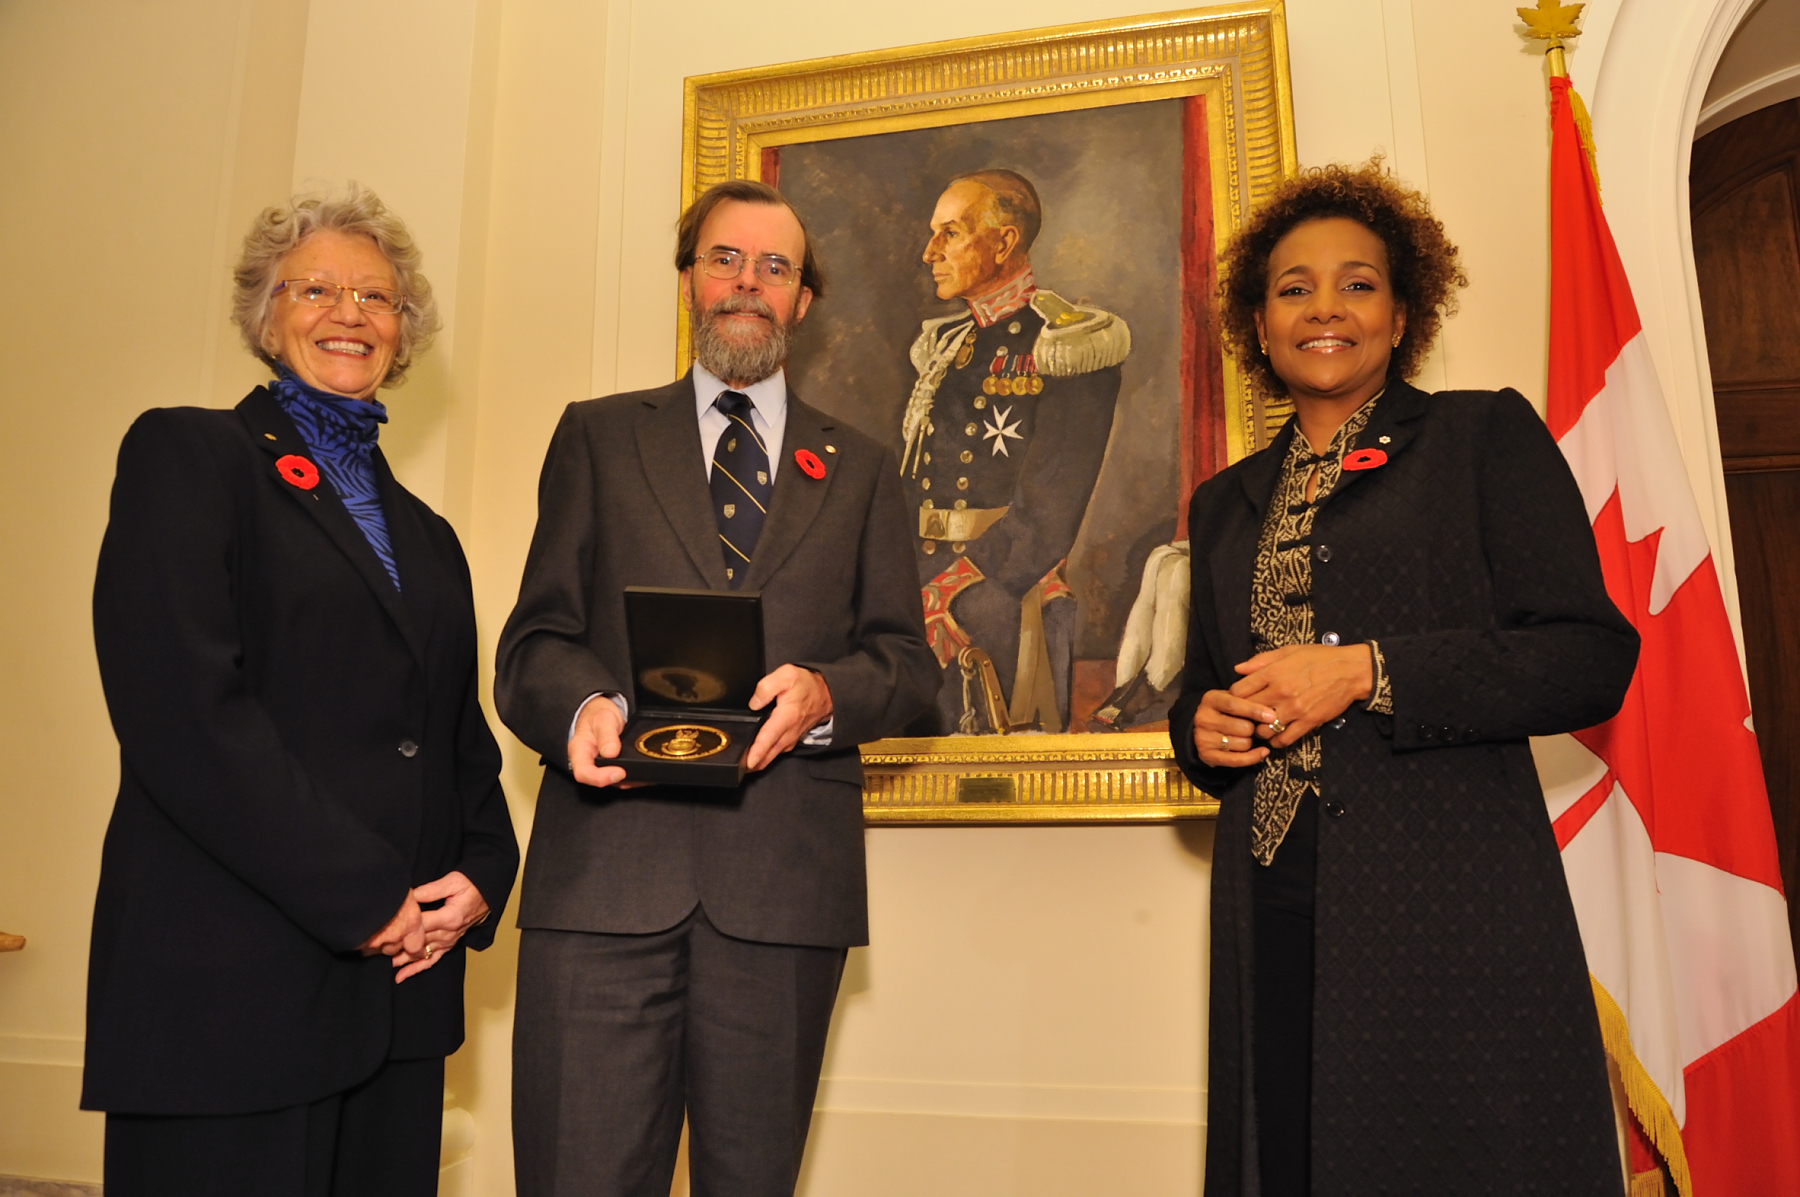 A picture of the laureate with Her Excellency and Ms. Jacob was taken after the ceremony in front of former Governor General Vincent Massey's portrait who, in 1959, first awarded the medal administered by the Royal Canadian Geographical Society.